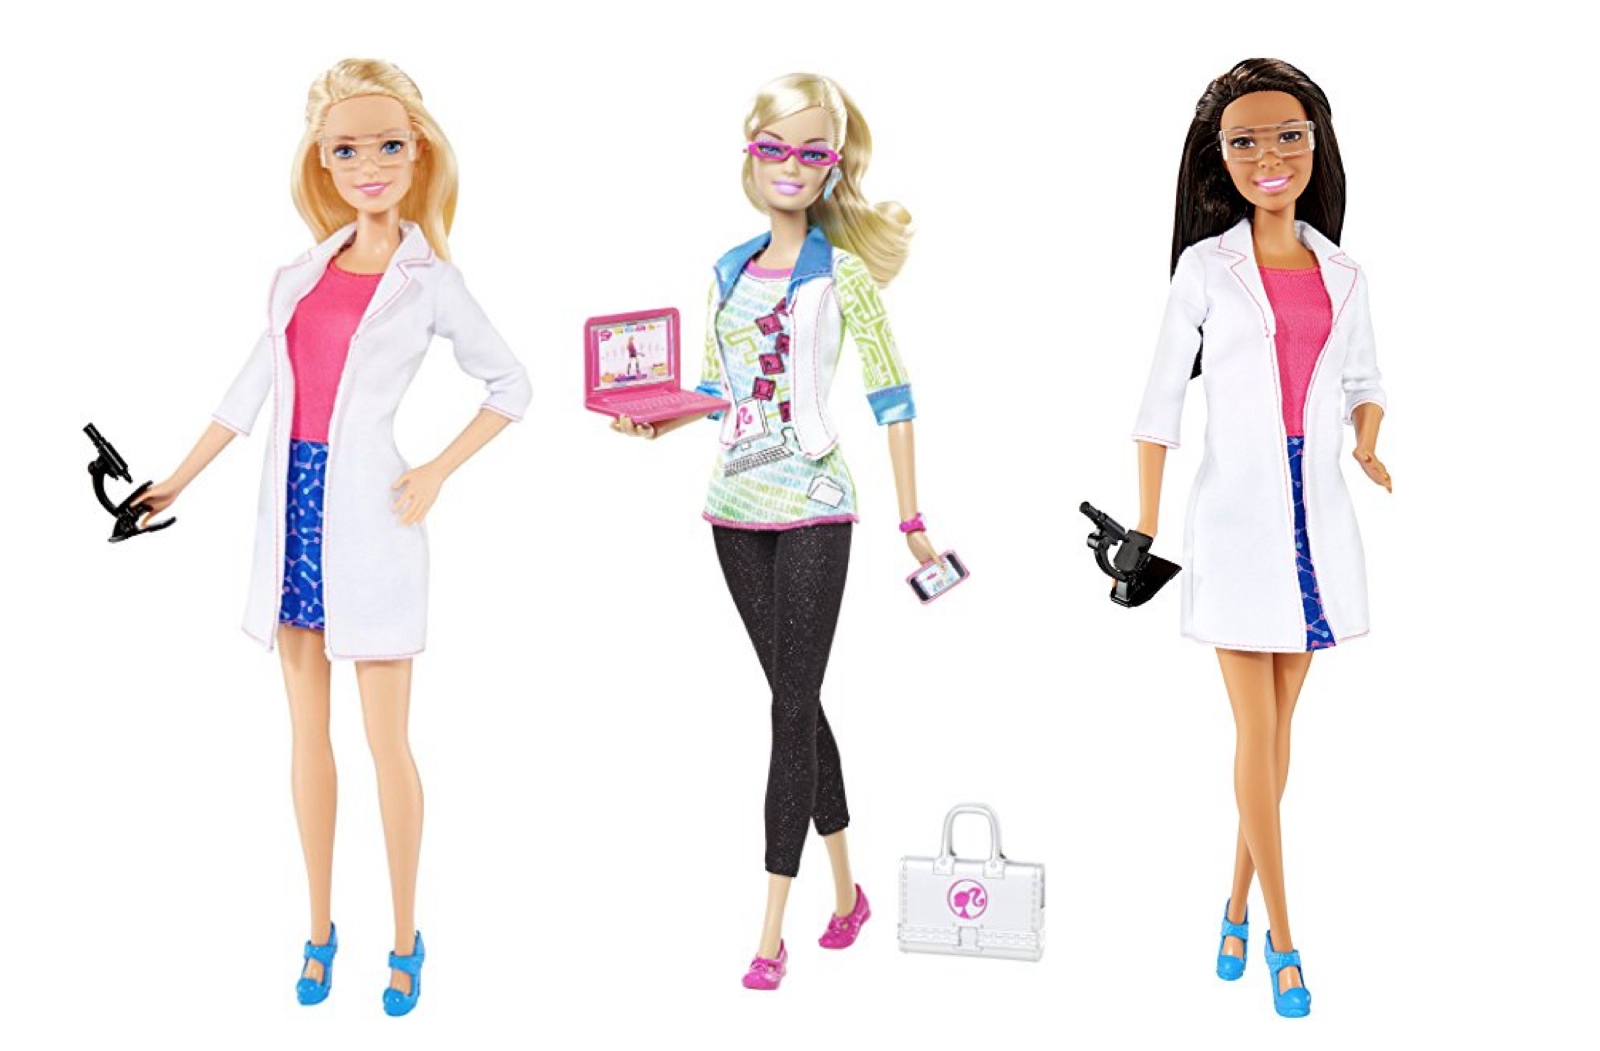 imperfection barbie Makeup tips and tricks learn what makeup to buy and how to use eye shadow, blush, mascara, eyeliner, foundation, concealer, face powder, and more.